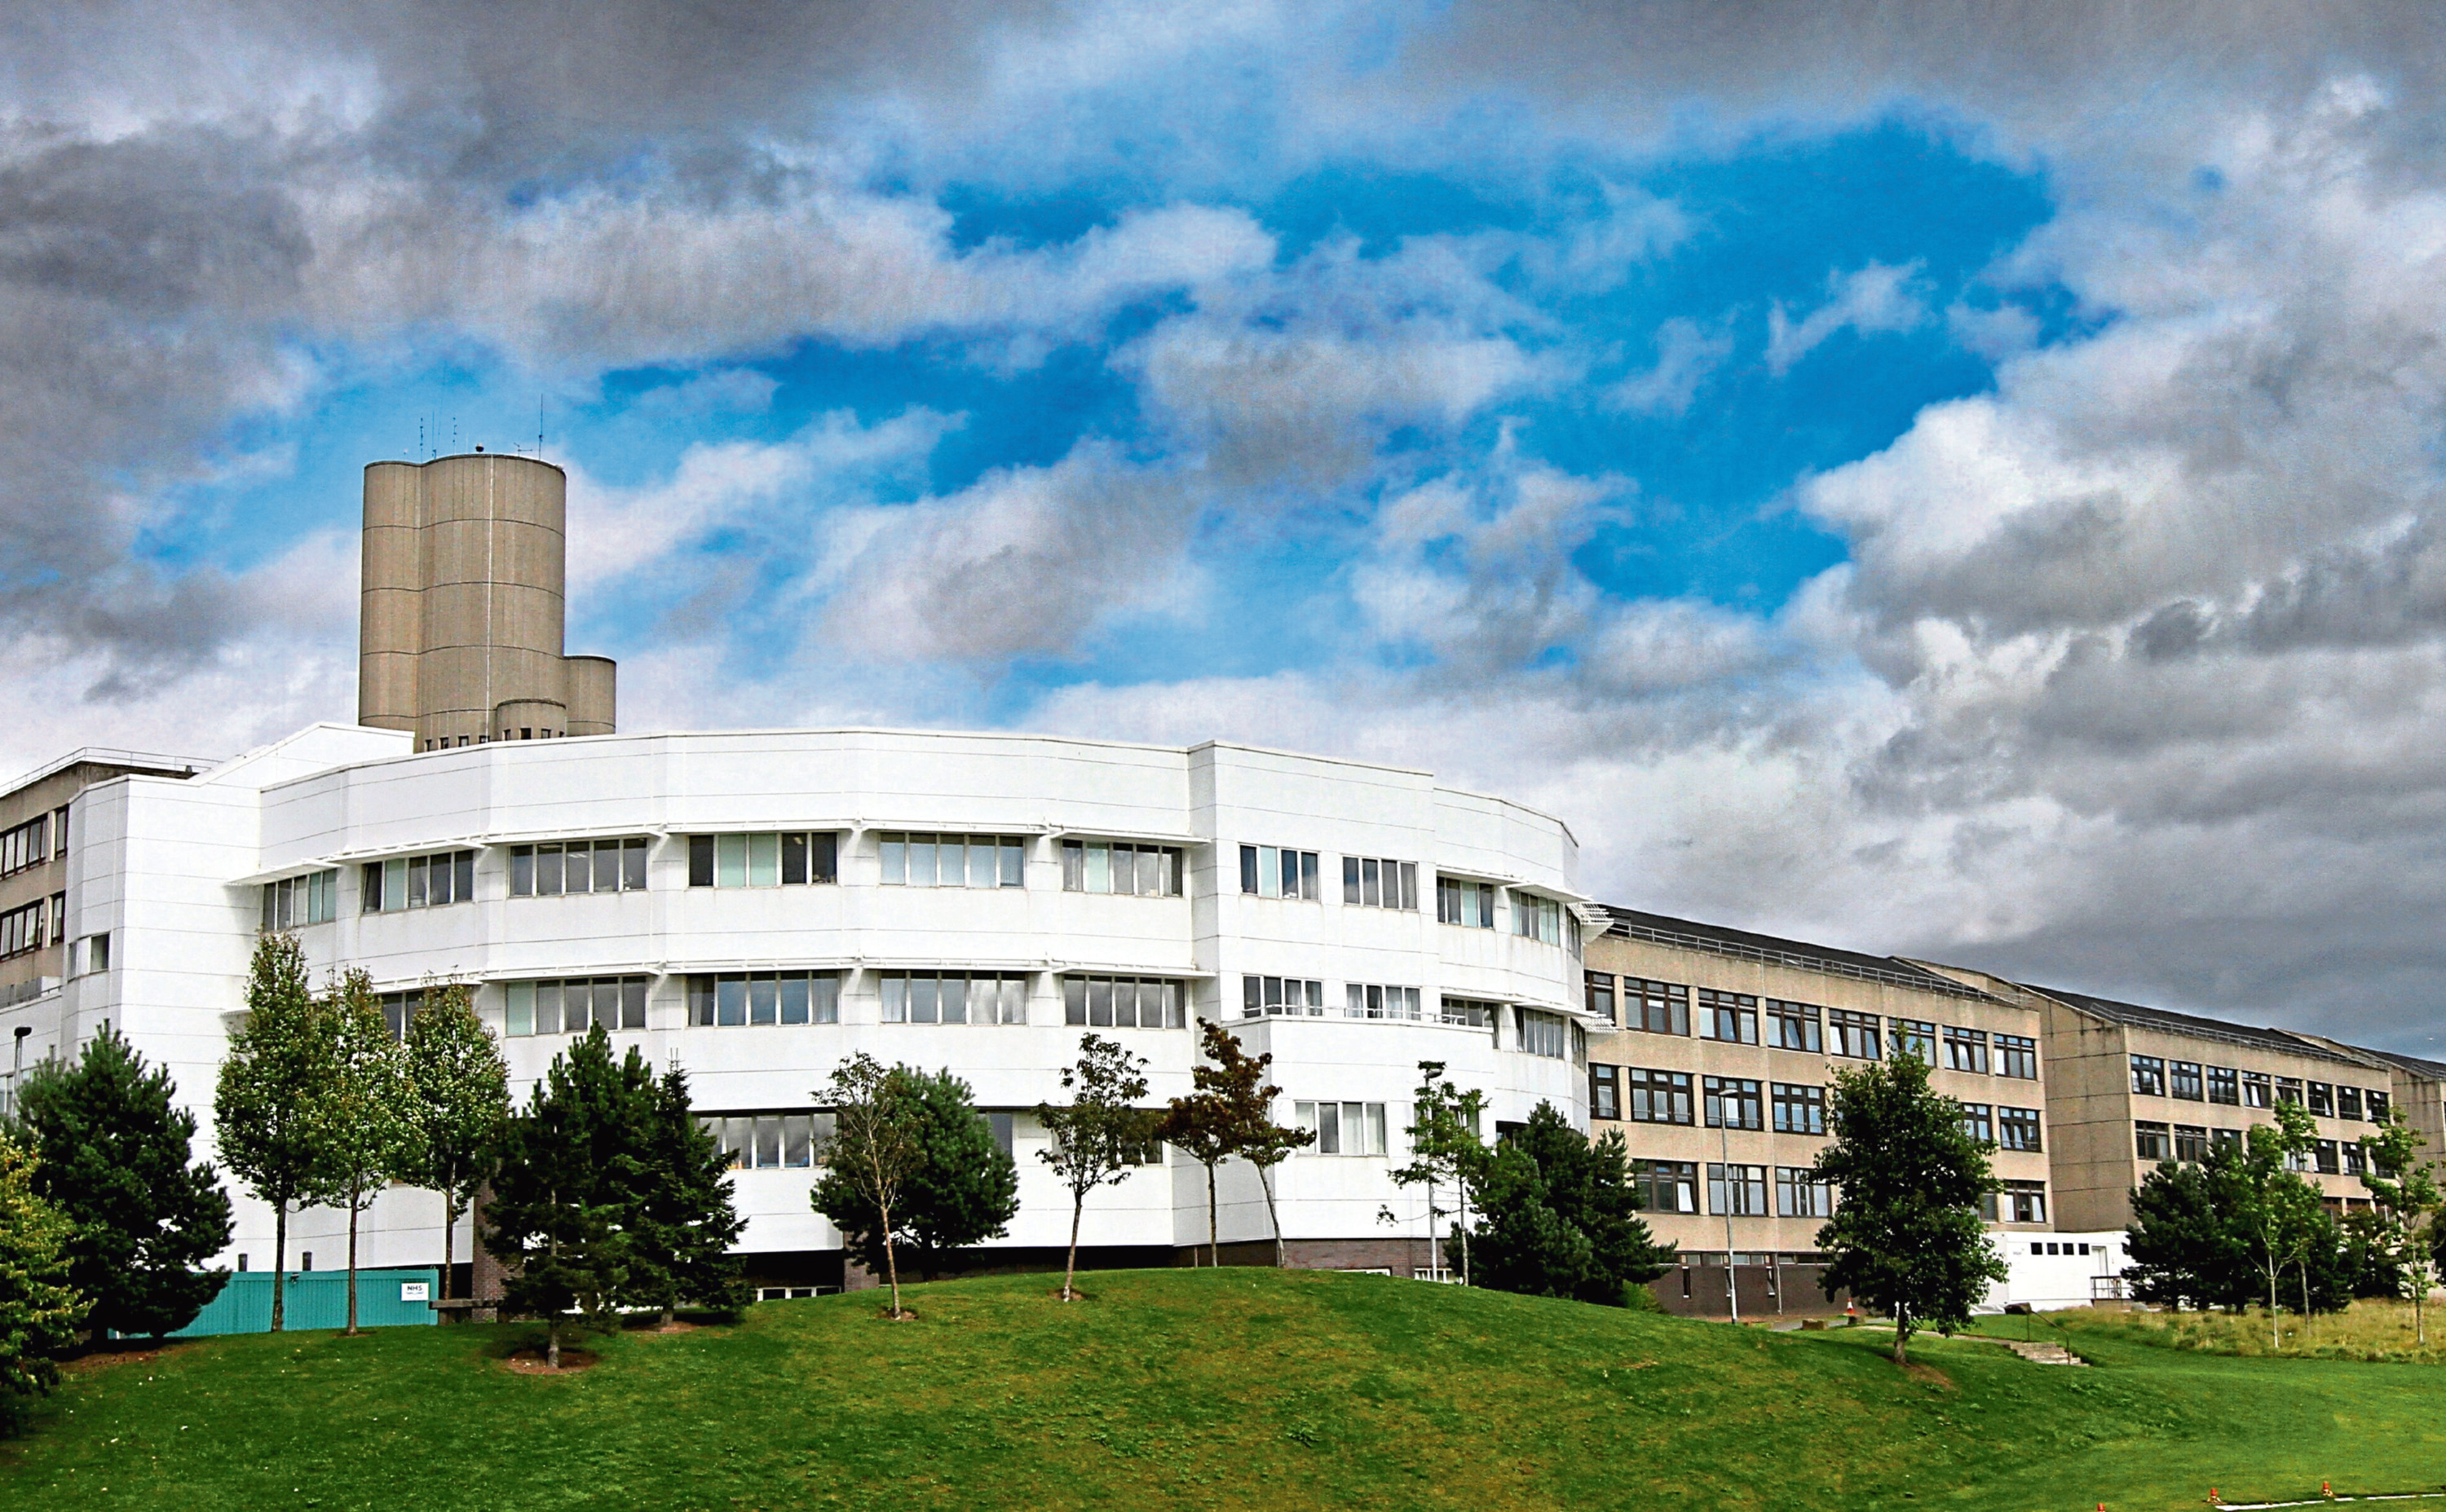 Ninewells Hospital (stock image)